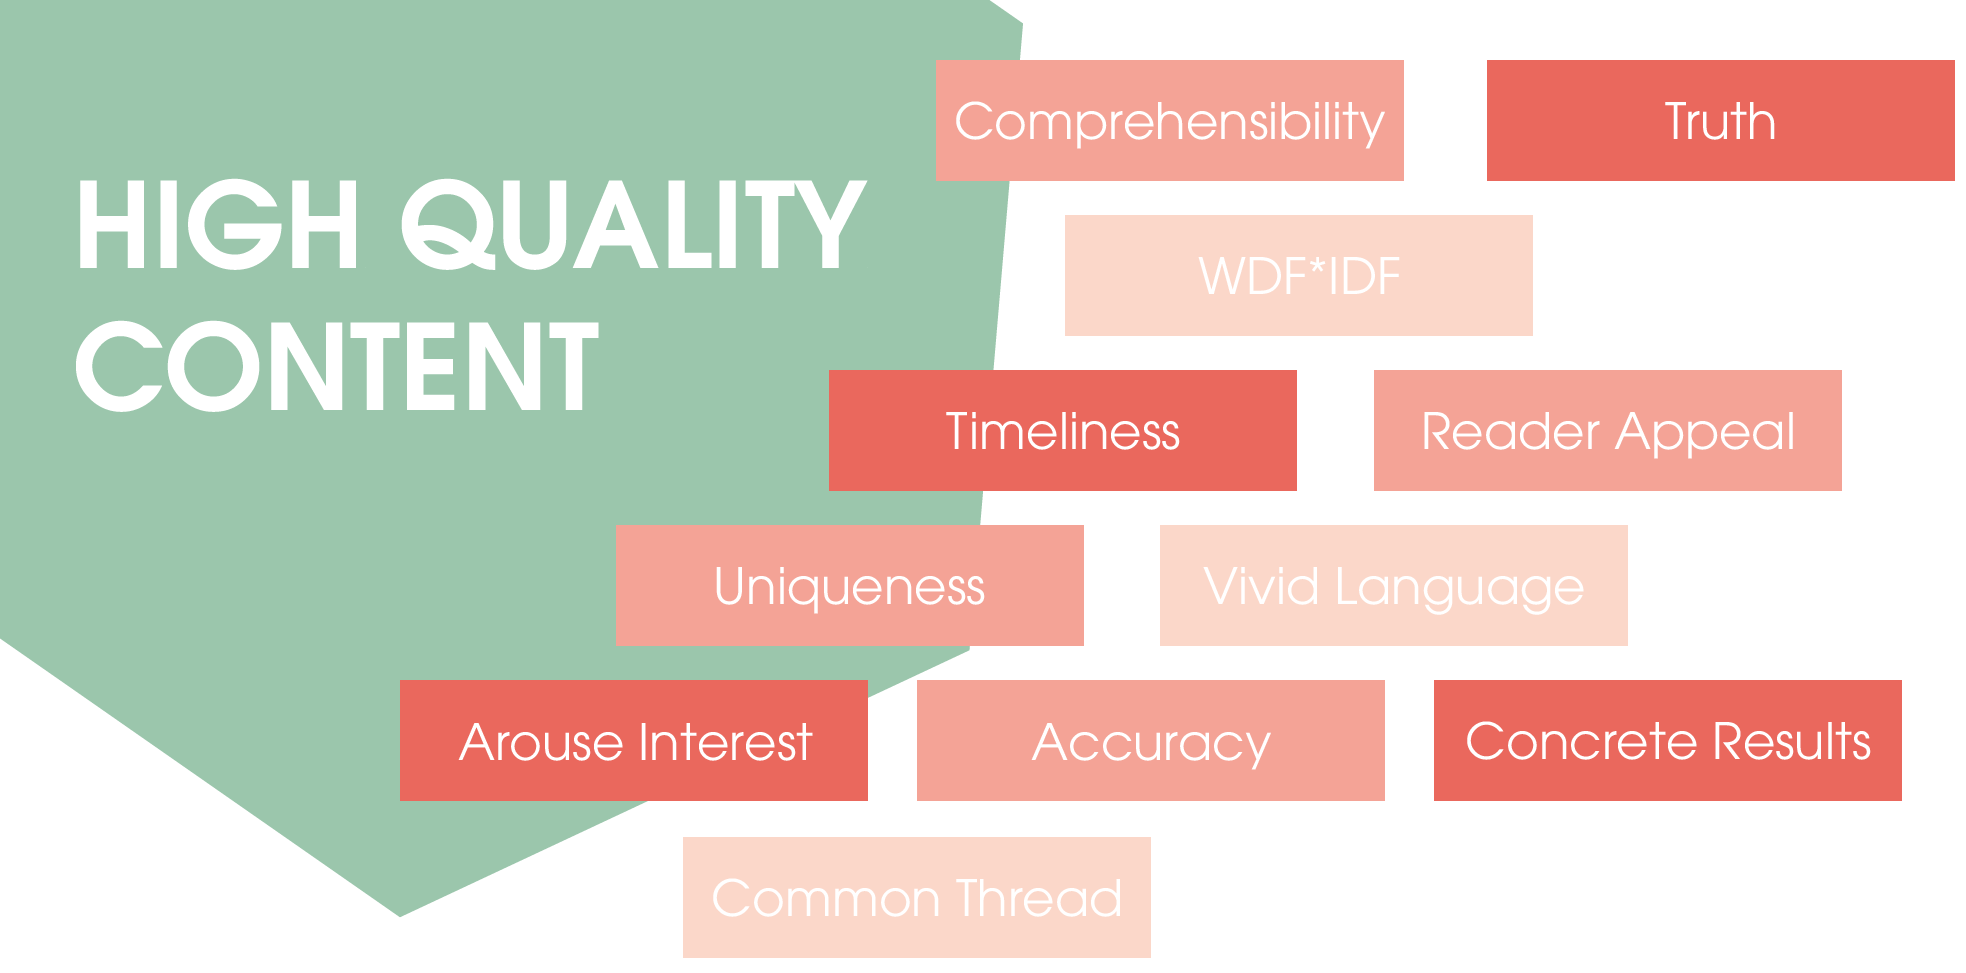 The image shows a graphic that represents the basic building blocks of a high-quality text. These are the following: - Understandability - WDF*IDF - Truth - Timeliness - Reader appeal - Uniqueness - Arouse interest - Lively language - Flawlessness - Concrete results - Red thread